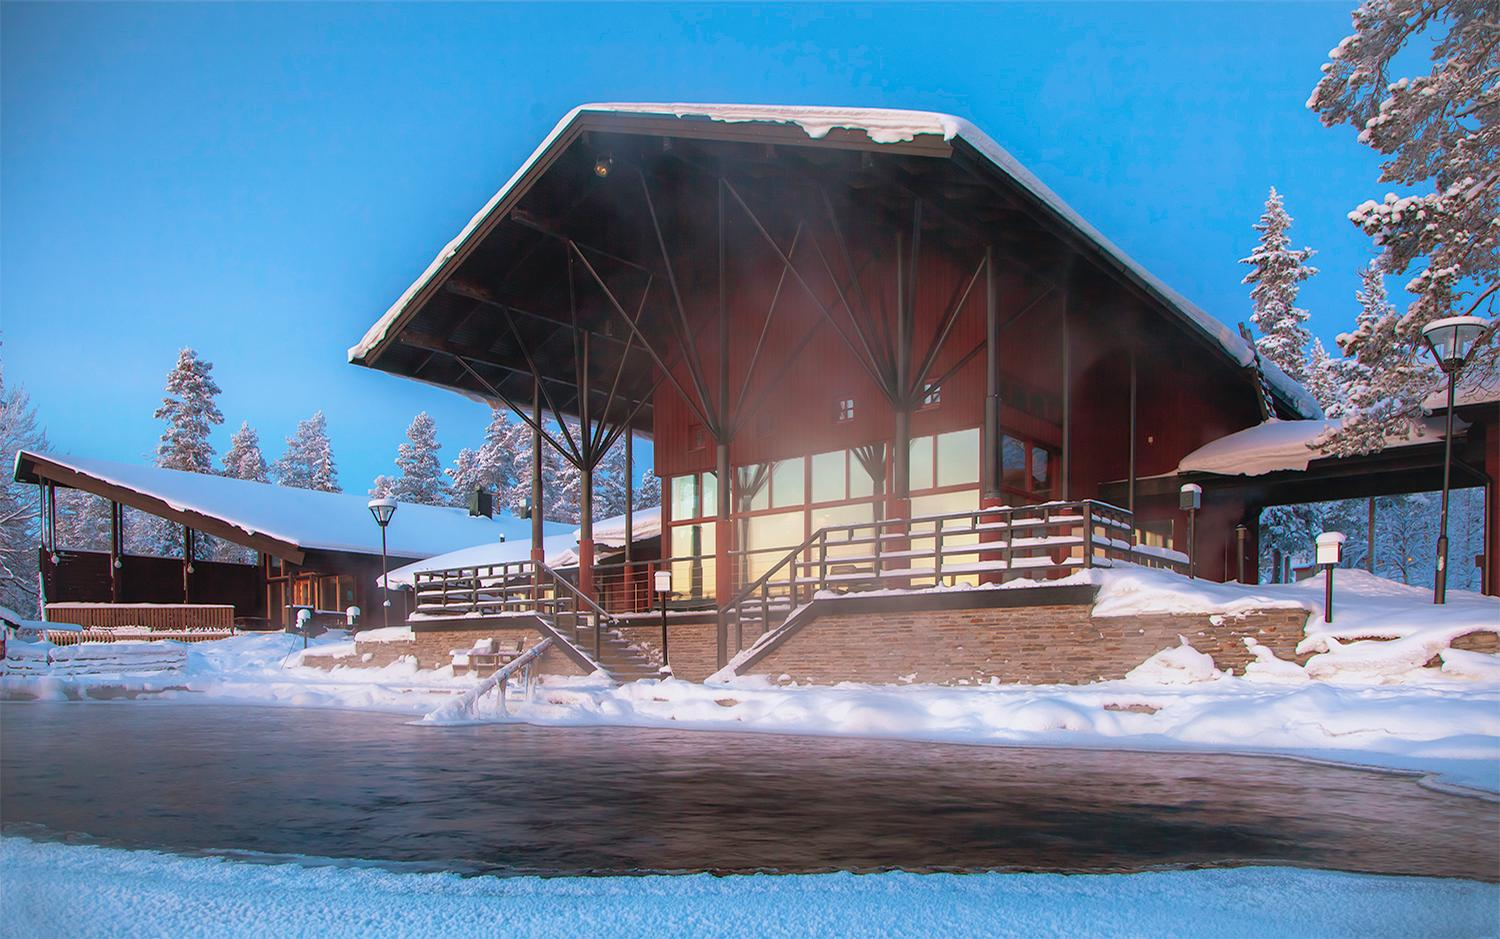 Arctic Elements Lakeside Spa will offer five different saunas, representing the elements found in traditional shamanic wellbeing rituals, with ancient Finnish Gods named as the protectors of the saunas